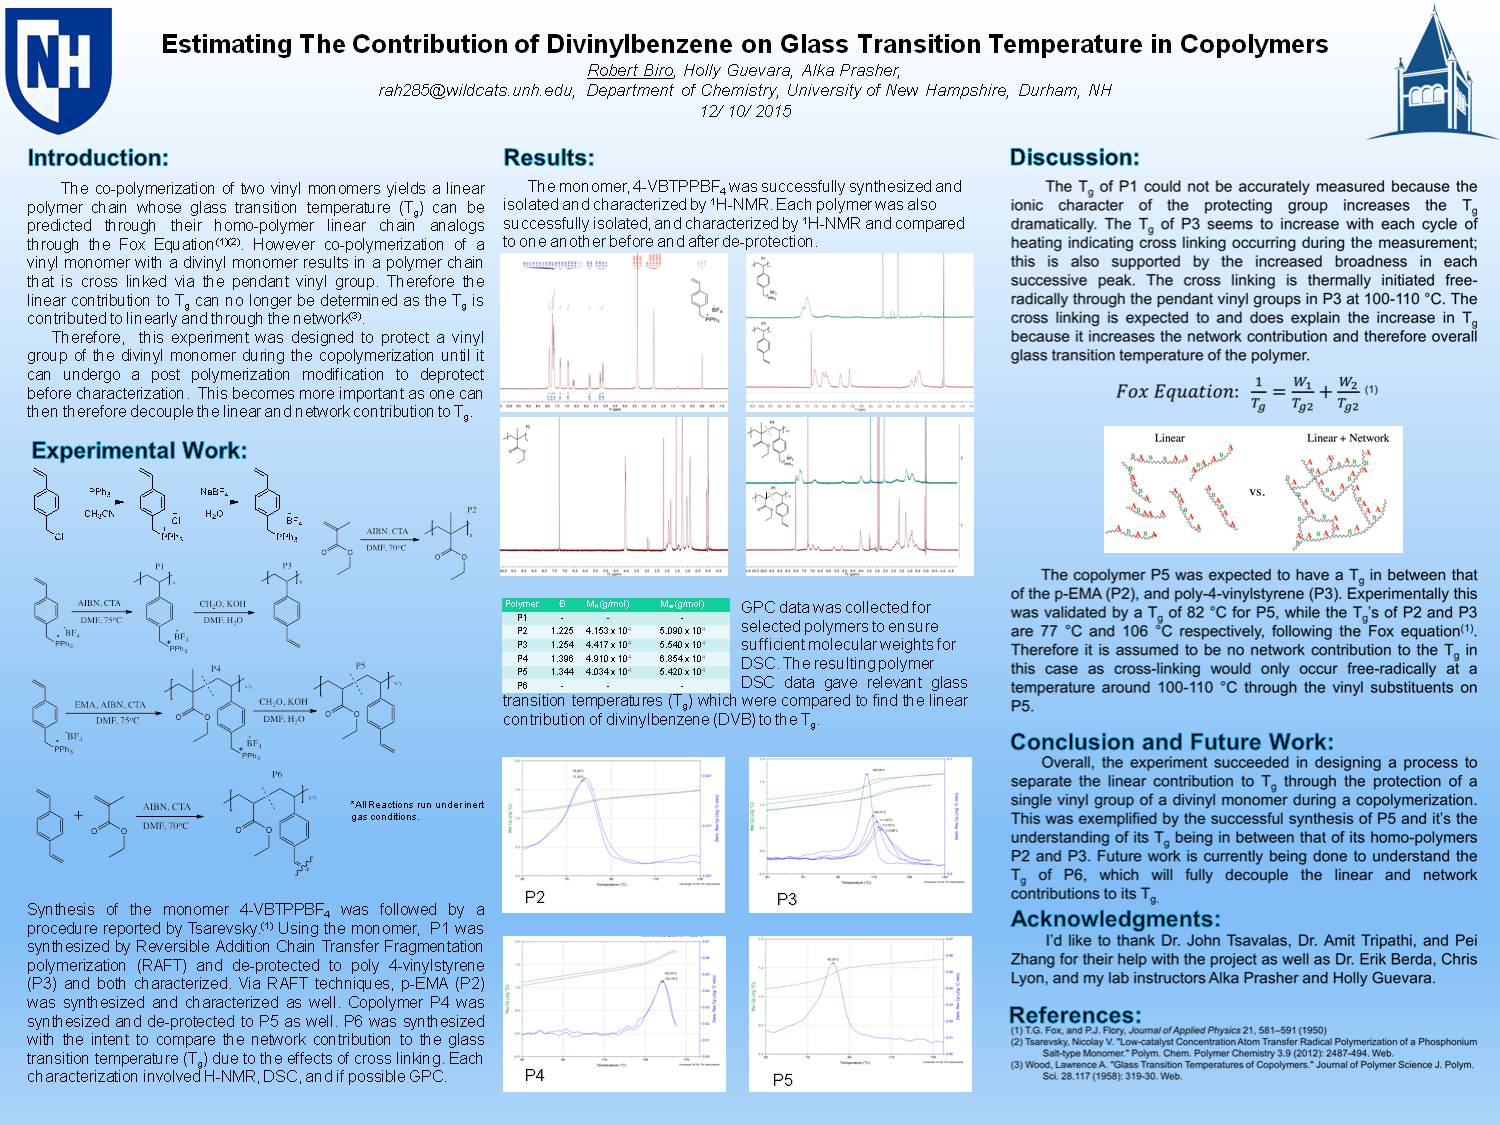 Estimating The Contribution Of Divinylbenzene On Glass Transition Temperature In Copolymers by rah285